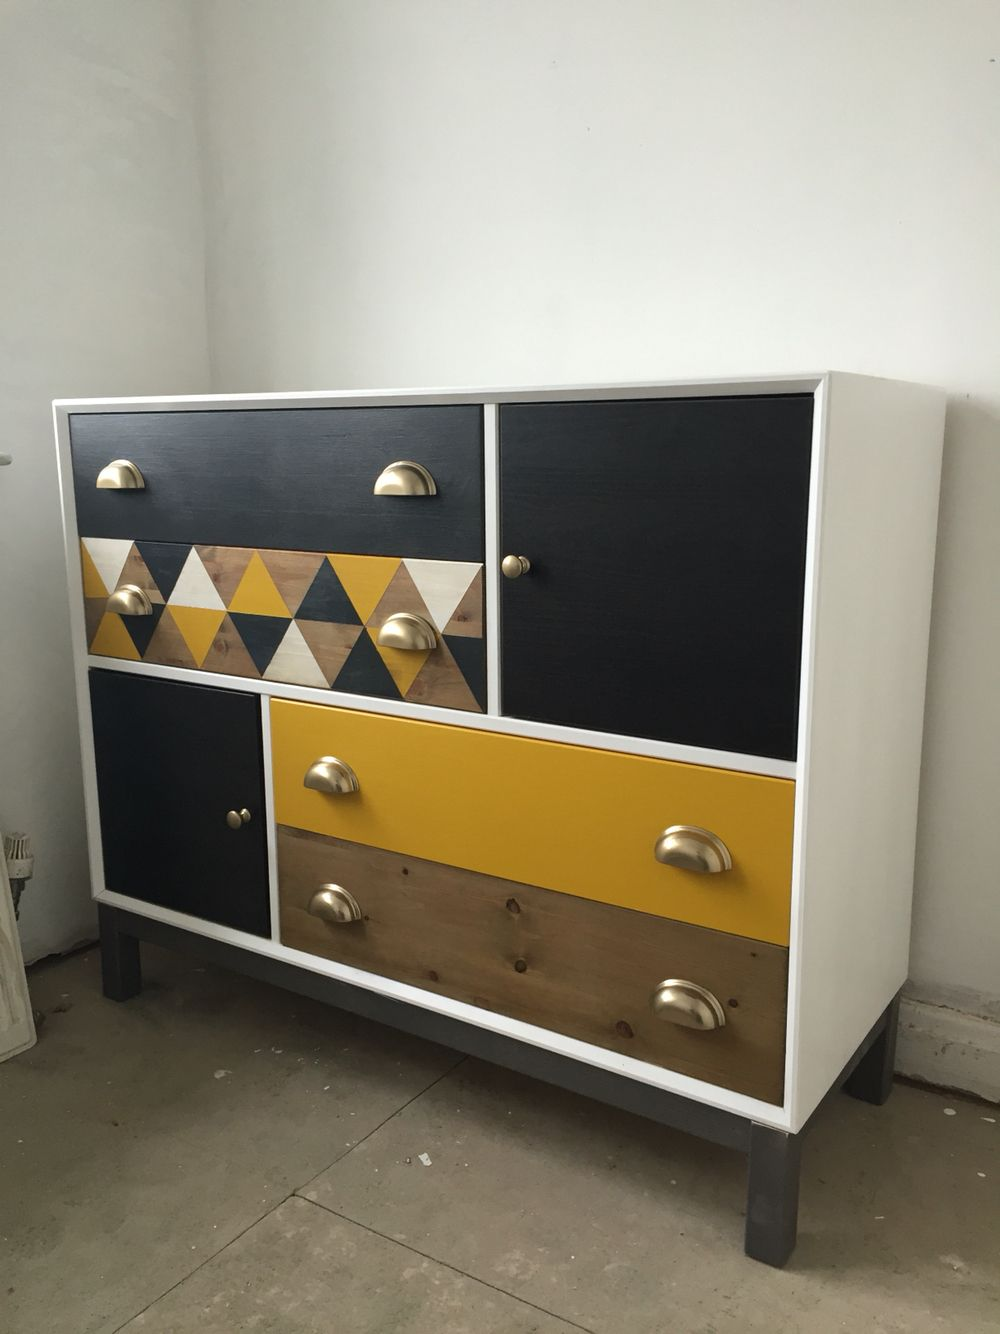 Beistellschrank Ikea Ikea Nornas Chest Of Drawers Hack Yellow Grey Geometric Home